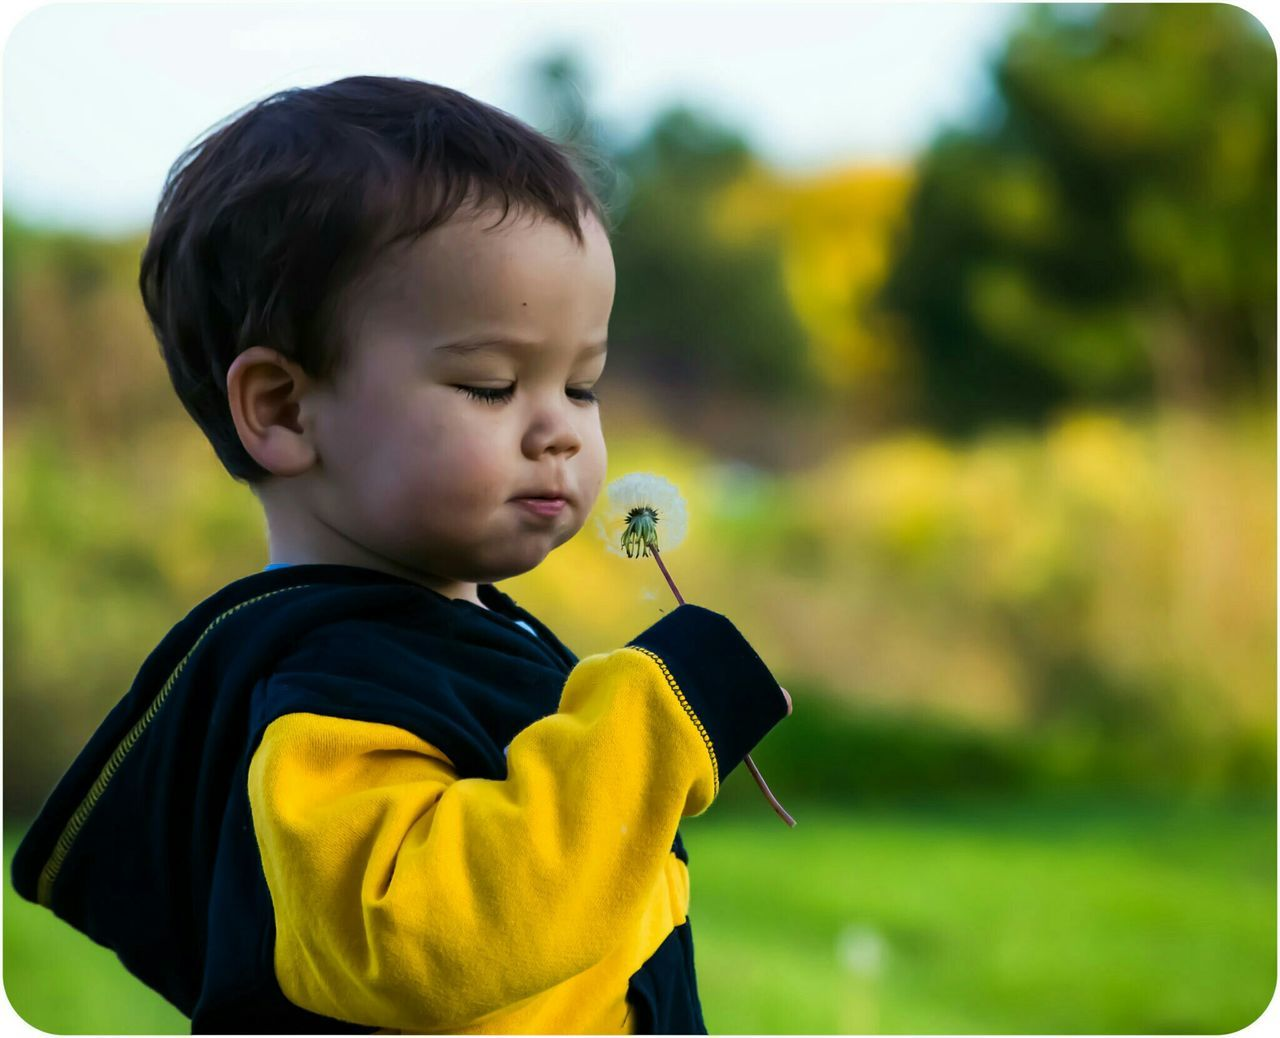 childhood, boys, real people, focus on foreground, one person, leisure activity, holding, outdoors, casual clothing, day, lifestyles, playing, yellow, one boy only, bubble wand, nature, close-up